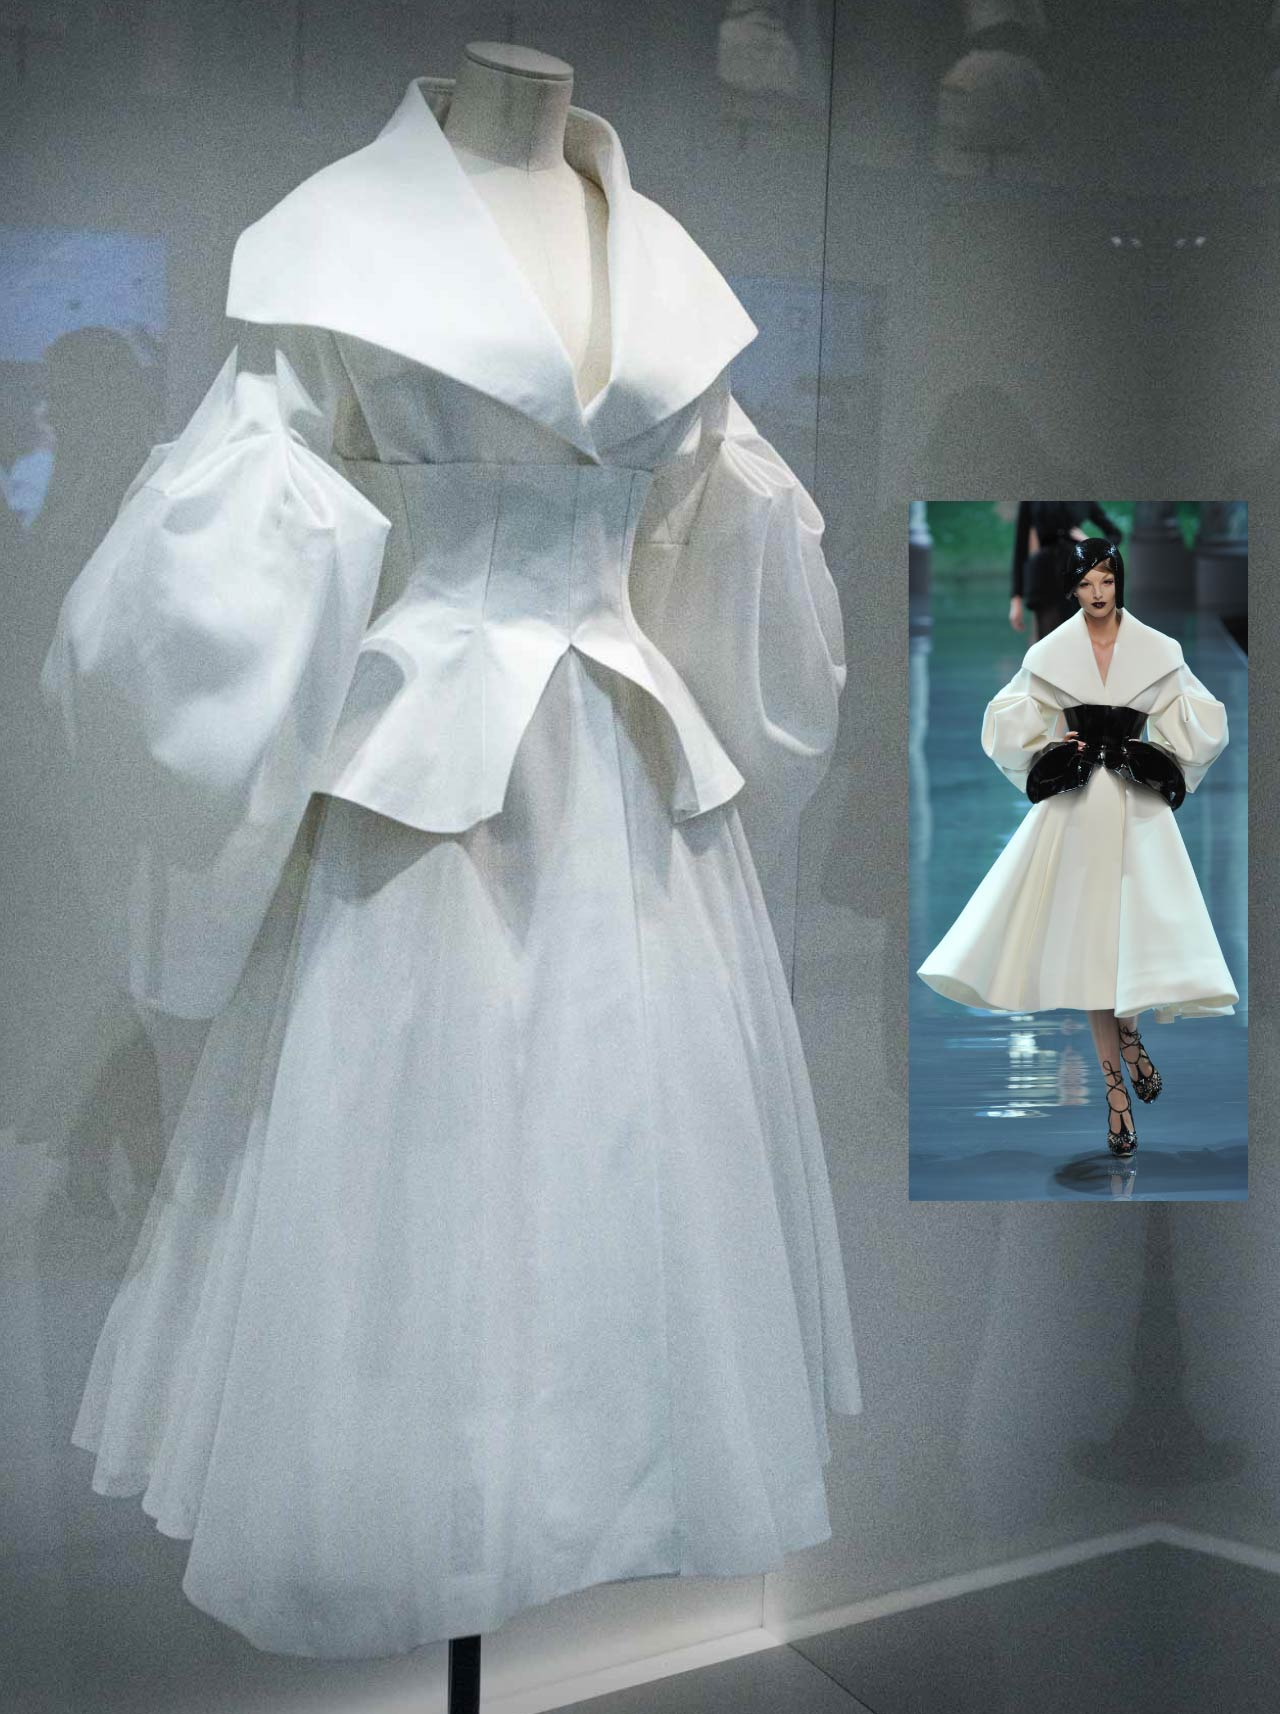 Toile of Christian Dior by John Galliano garment, Haute Couture, Autumn-Winter 2008. White dress with wide collar and cinched waist.